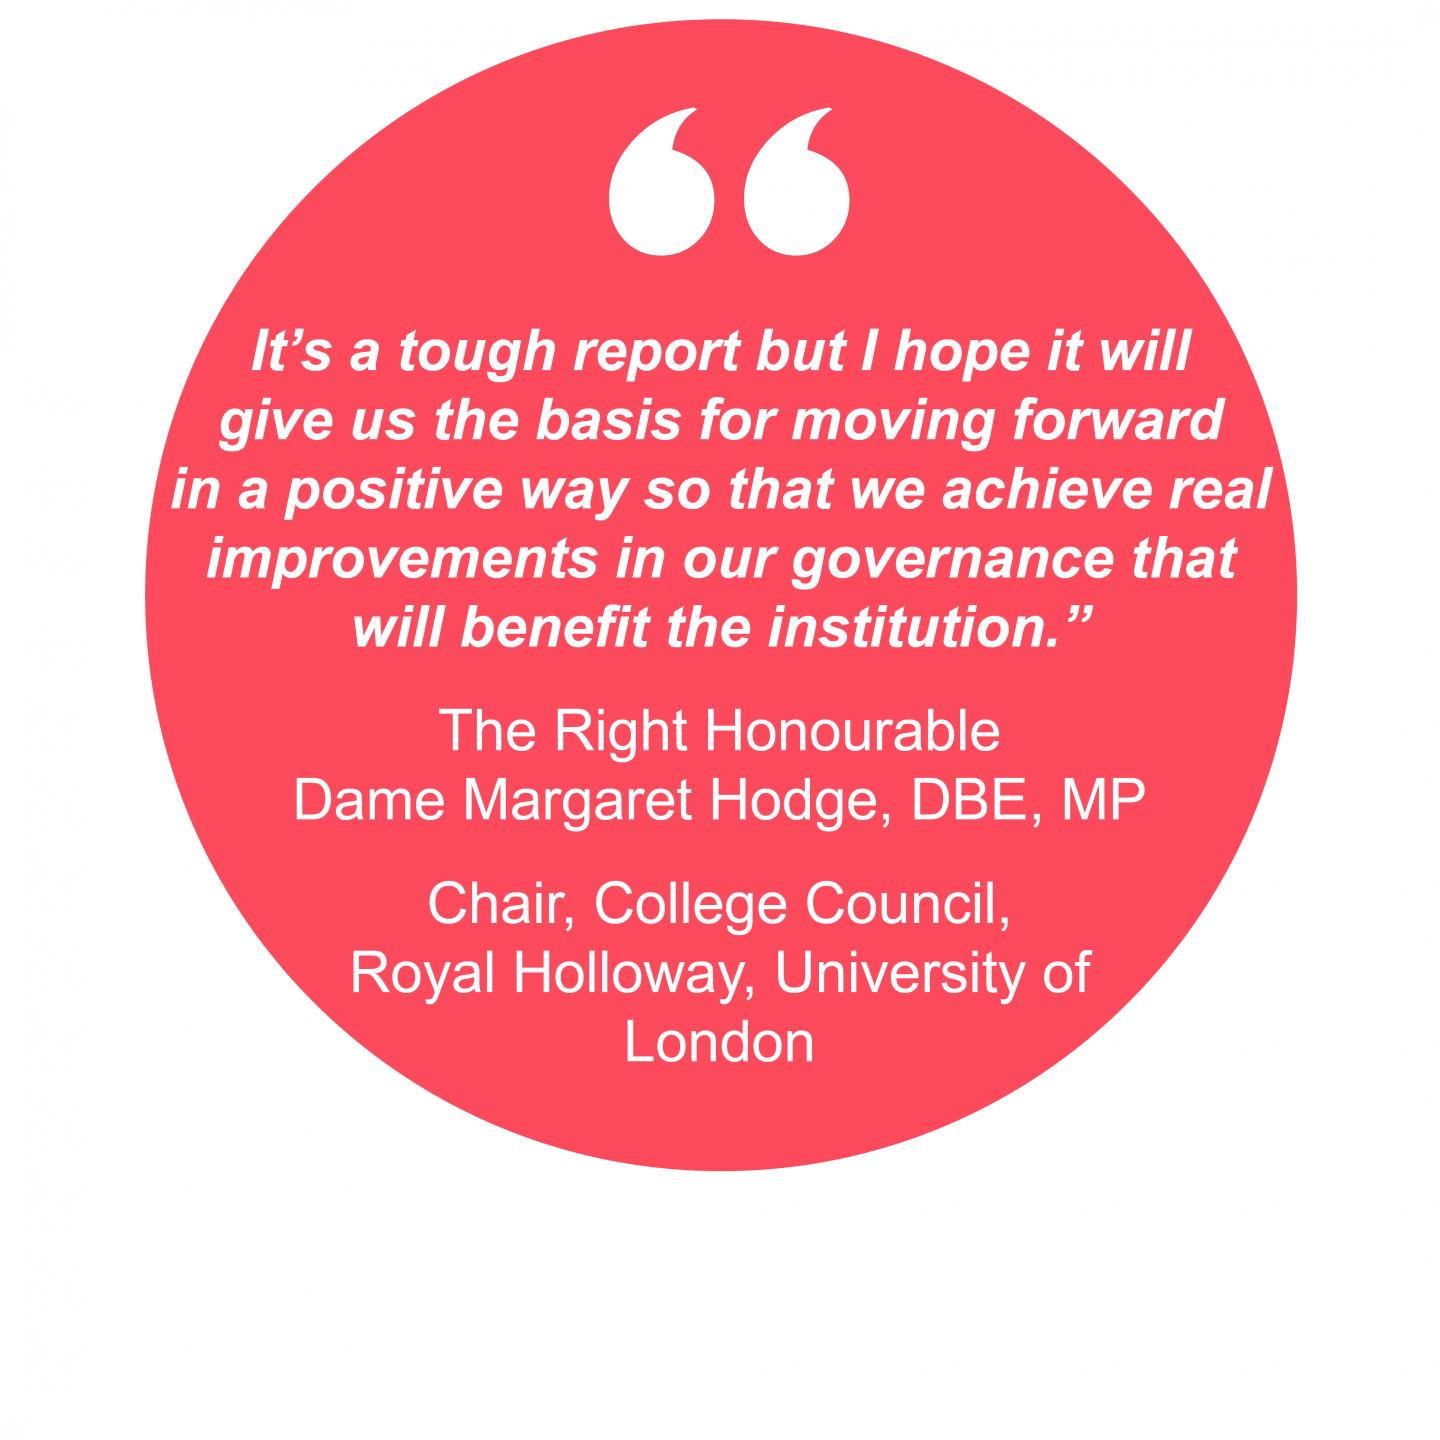 """It's a tough report but I hope it will give us the basis for moving forward in a positive way so that we achieve real improvements in our governance that will benefit the institution.""  The Right Honourable Dame Margaret Hodge, DBE, MP  Chair, College Council,  Royal Holloway, University of London"